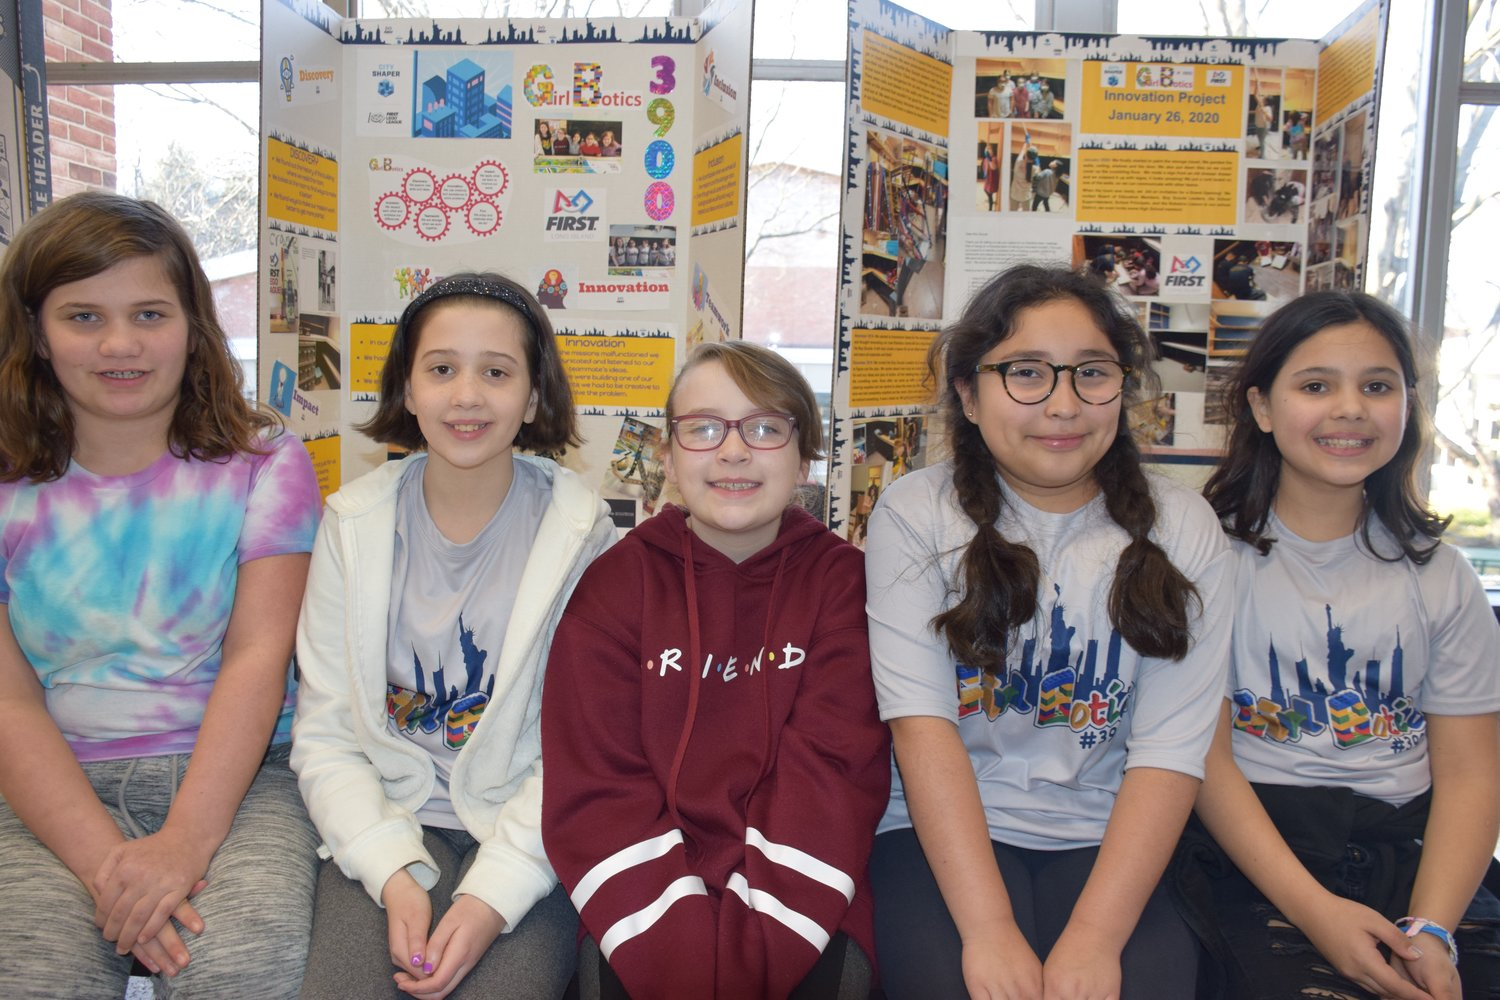 Girlbotics members, from left, Madeline Hataier, Mia Dessner, Julia Ergen, Gianna Moreano and Maya Valderrama took third place in the First Lego League regional competition on Jan. 26.